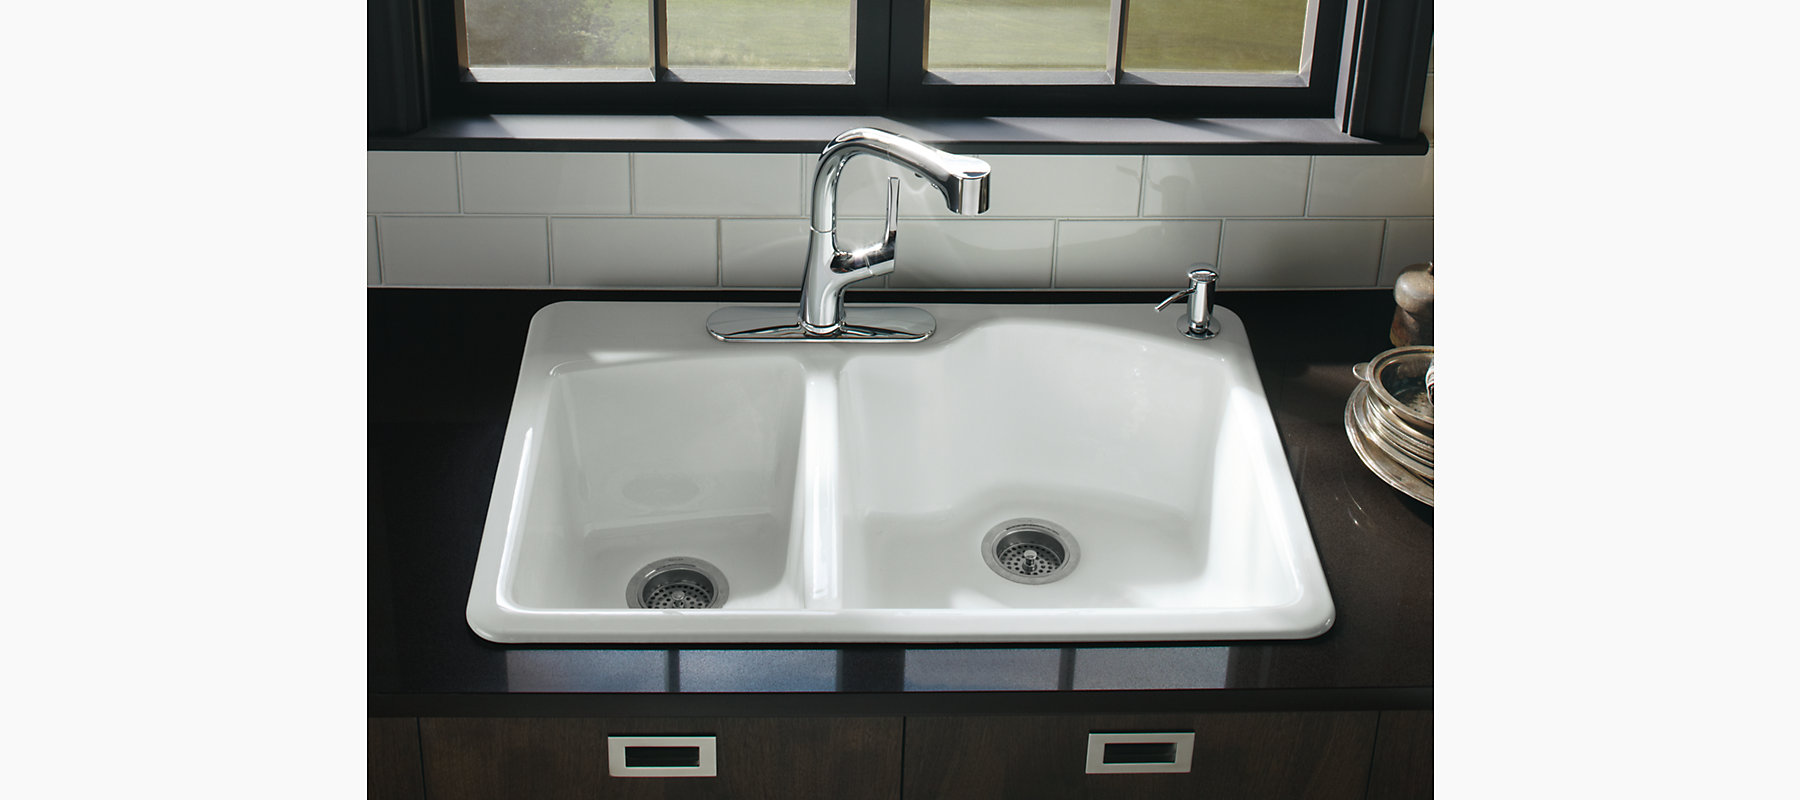 Sink Blank : Wheatland Top-Mount Kitchen Sink with Four Faucet Holes K-5870-4 ...